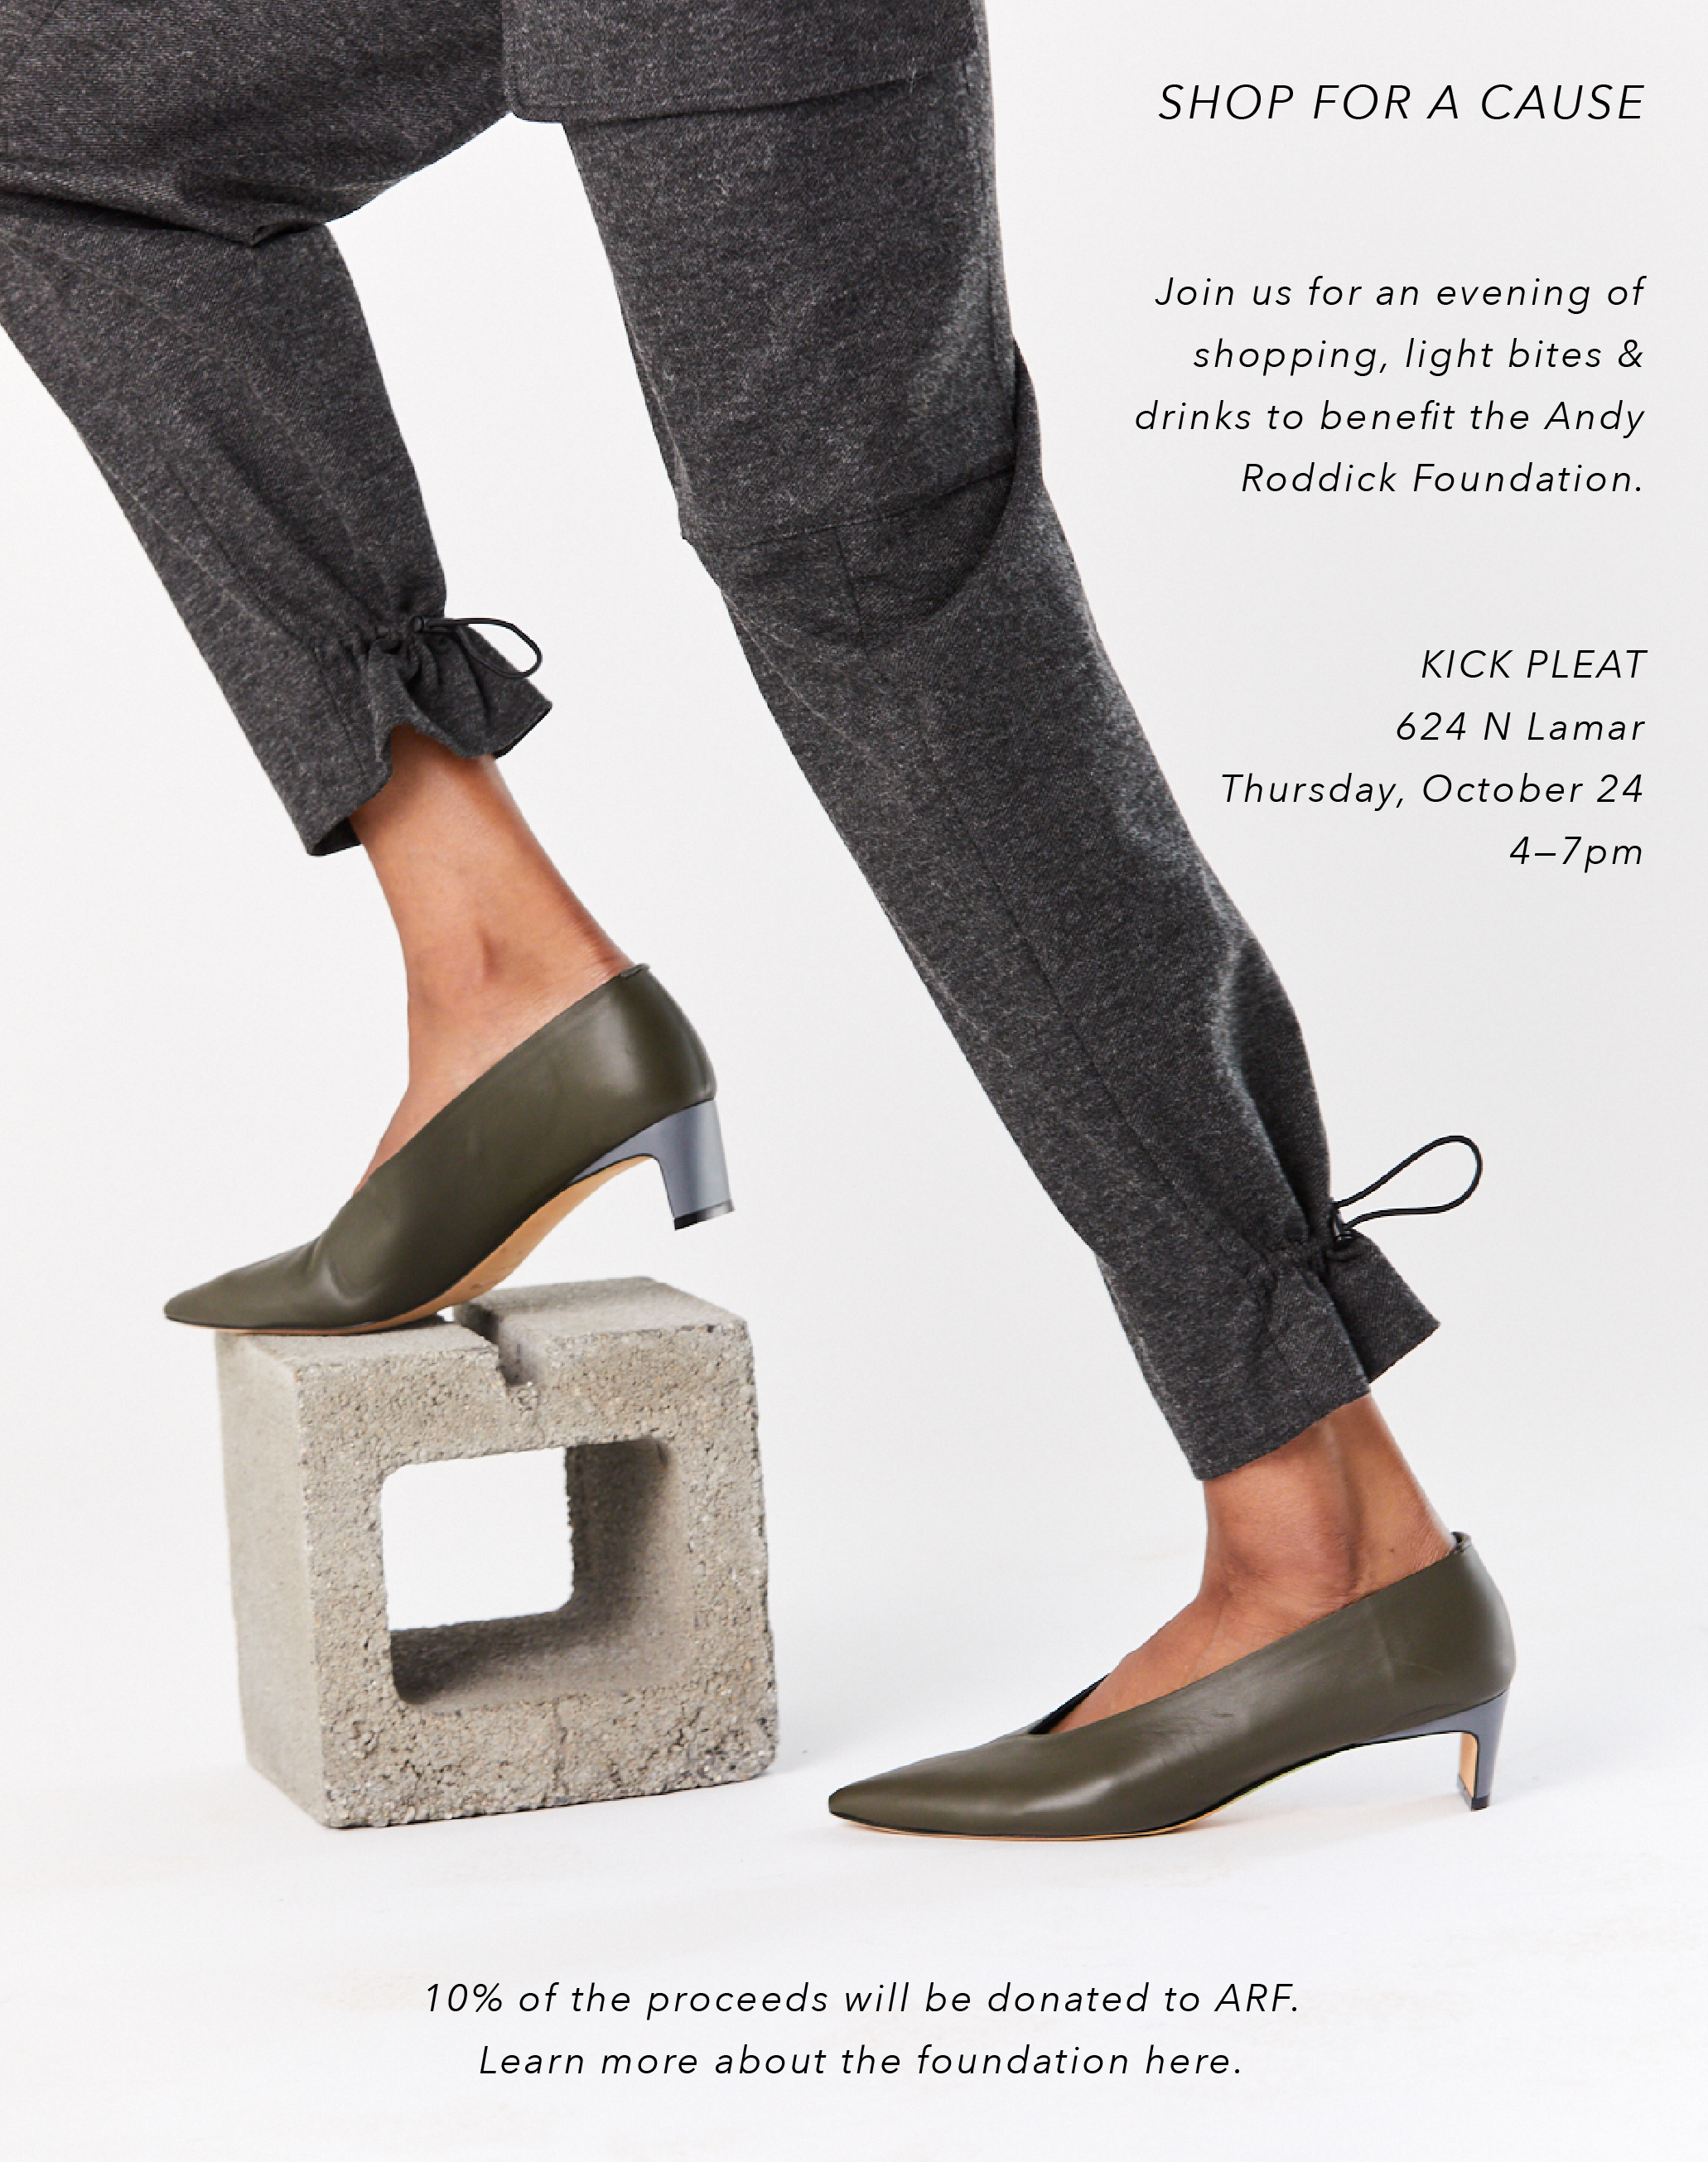 Kickpleat event.png